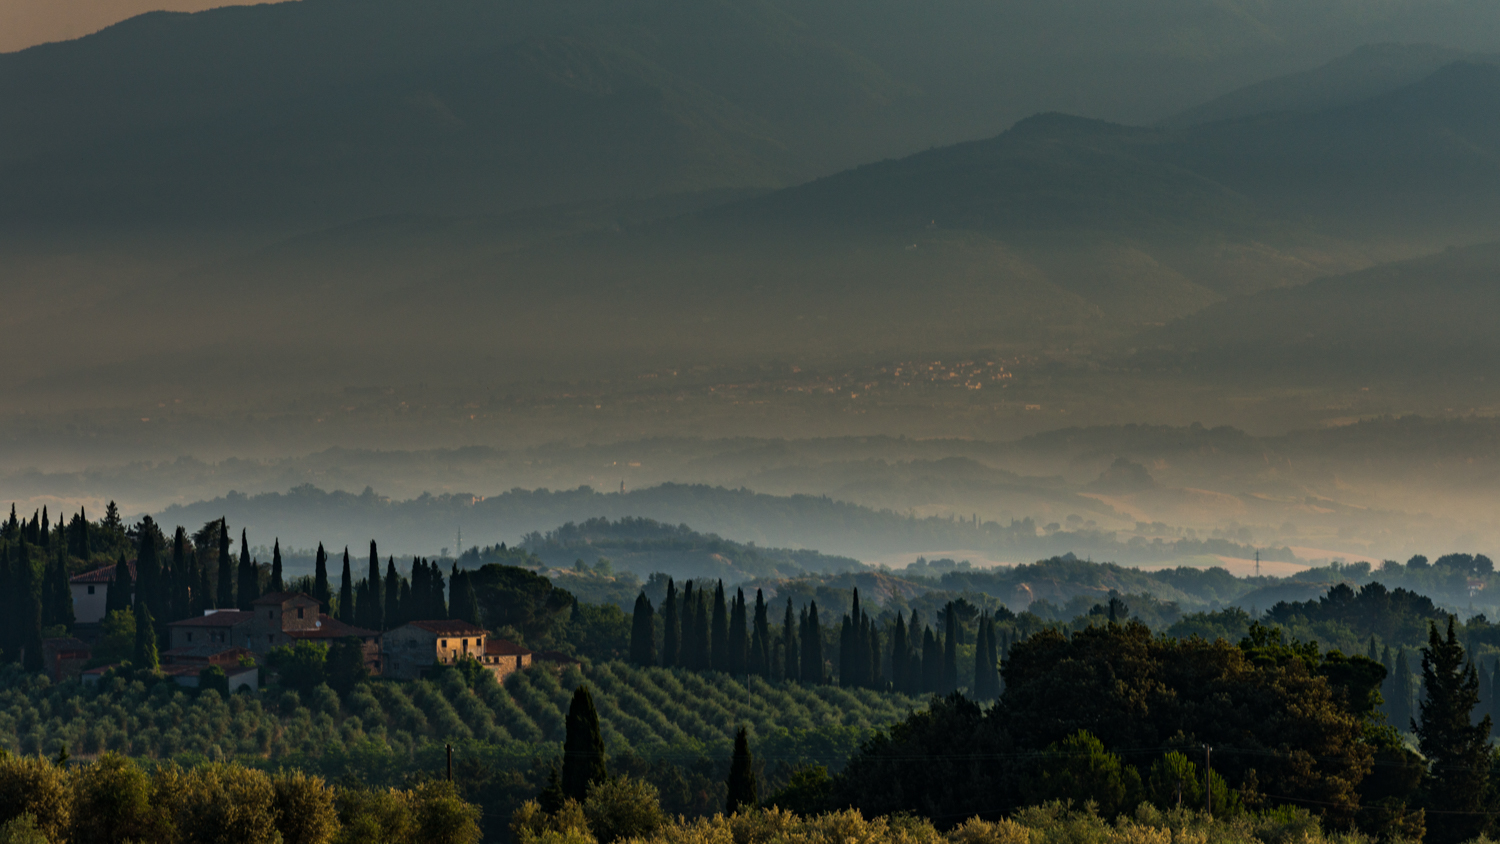 Italy : Tuscany : An intensely hot and humid morning in Chianti Classico